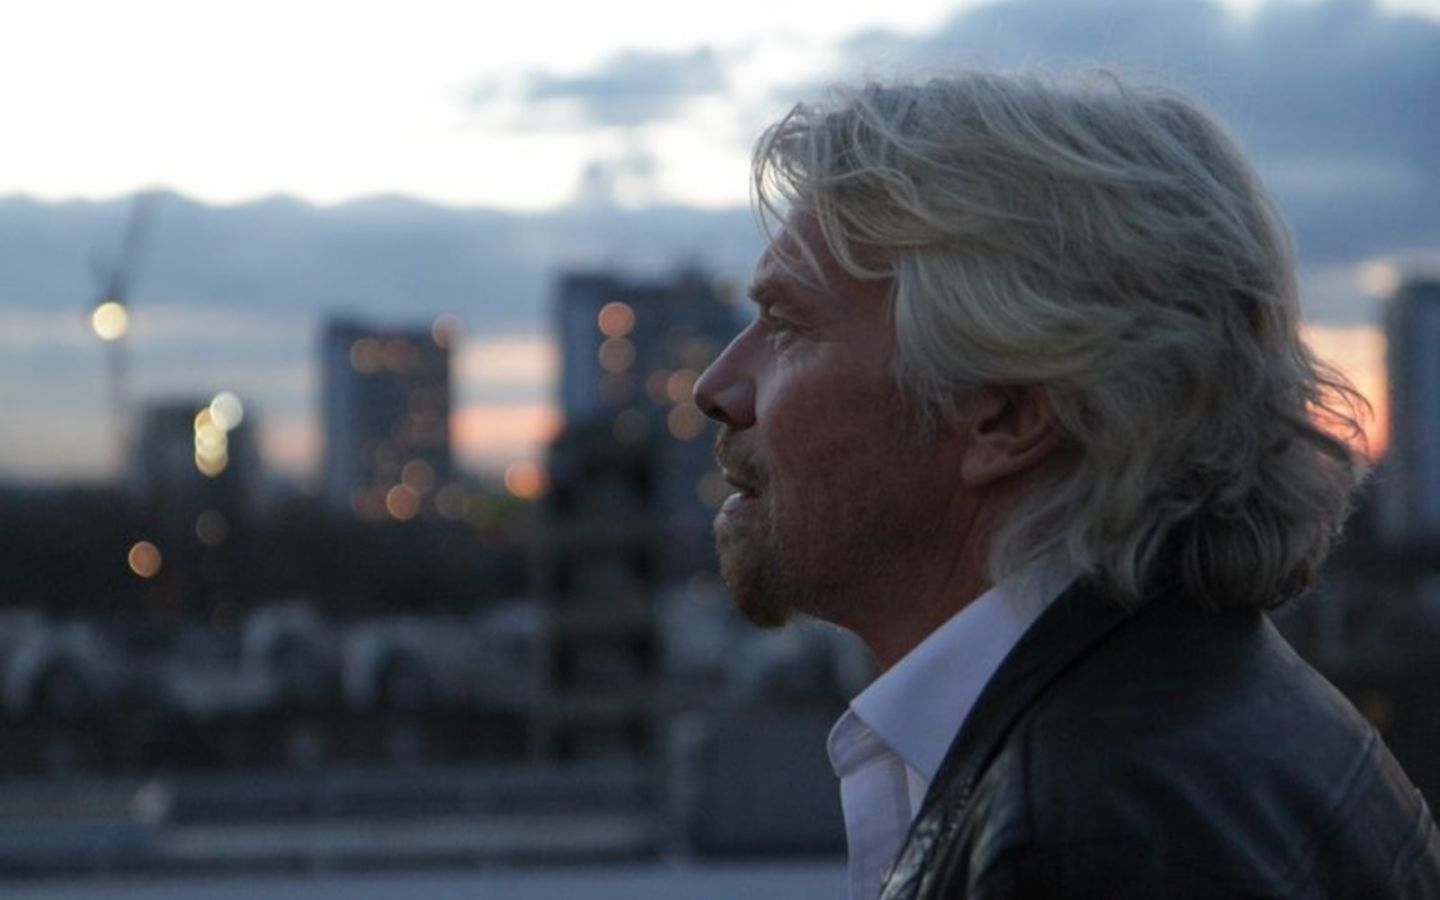 Side profile of Richard Branson looking pensive with sky and buildings in the background